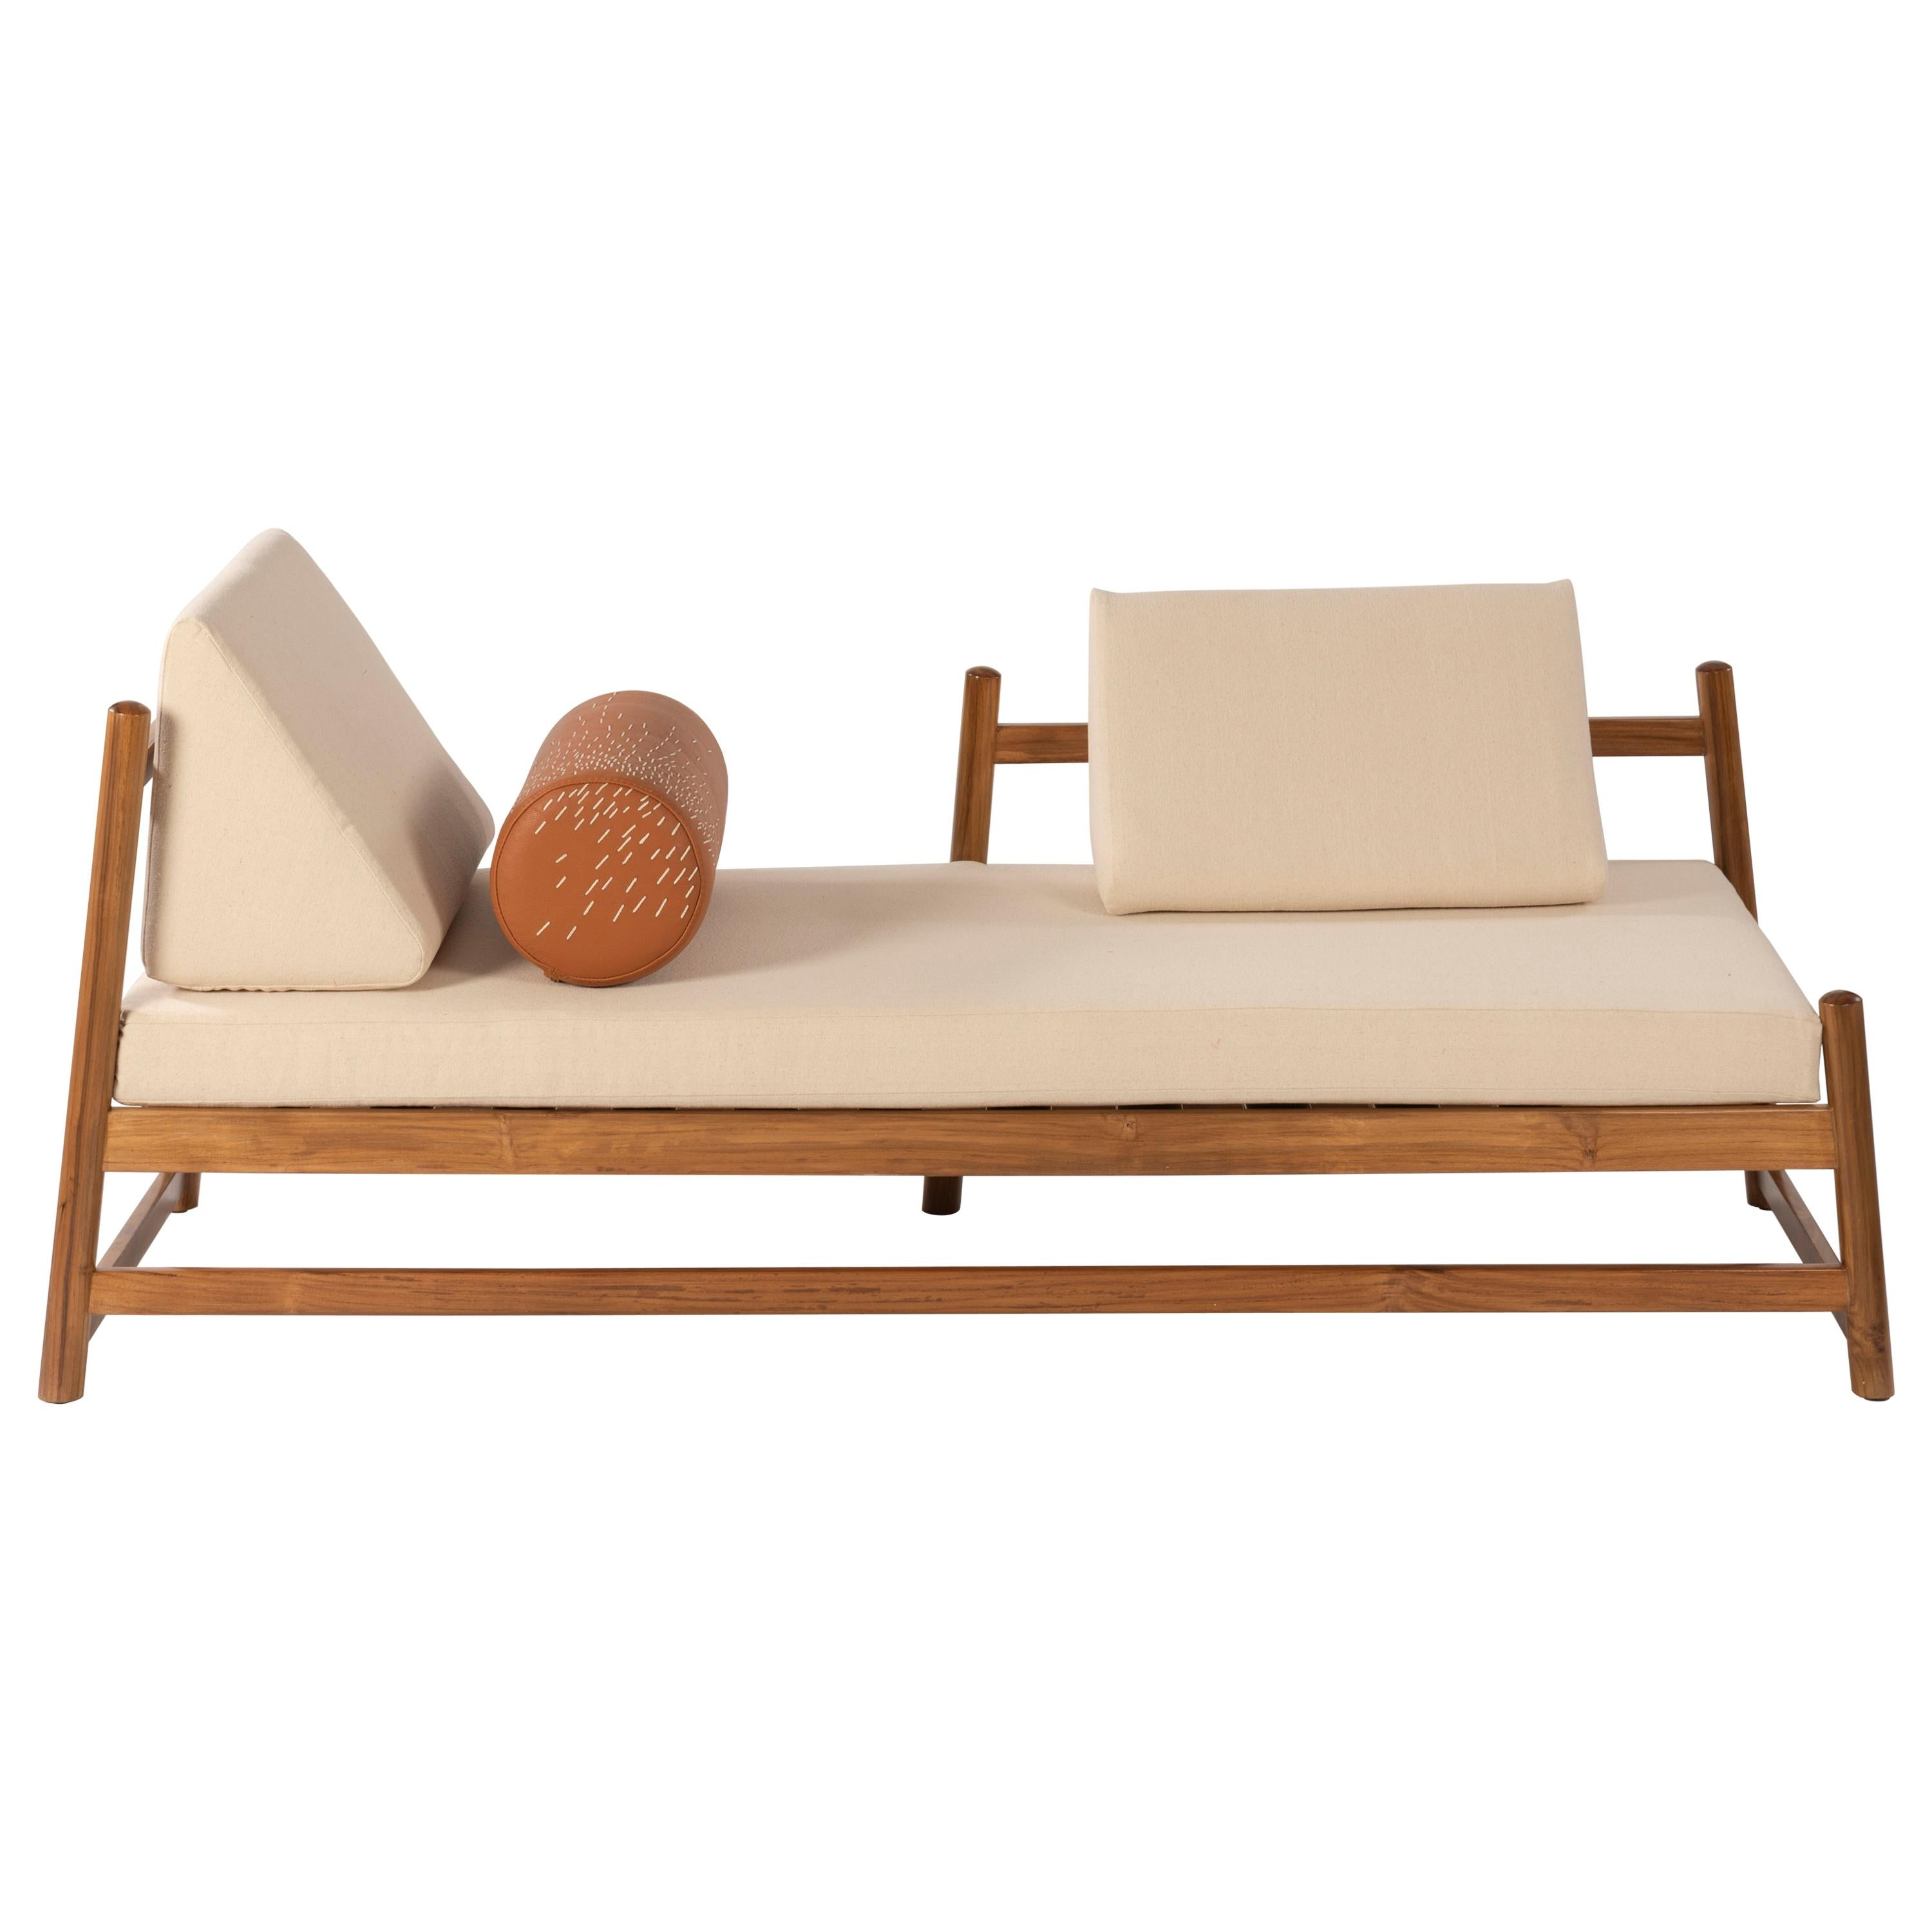 Pita Outdoors Daybed, Teak Wood, Off-White Denim and Leather